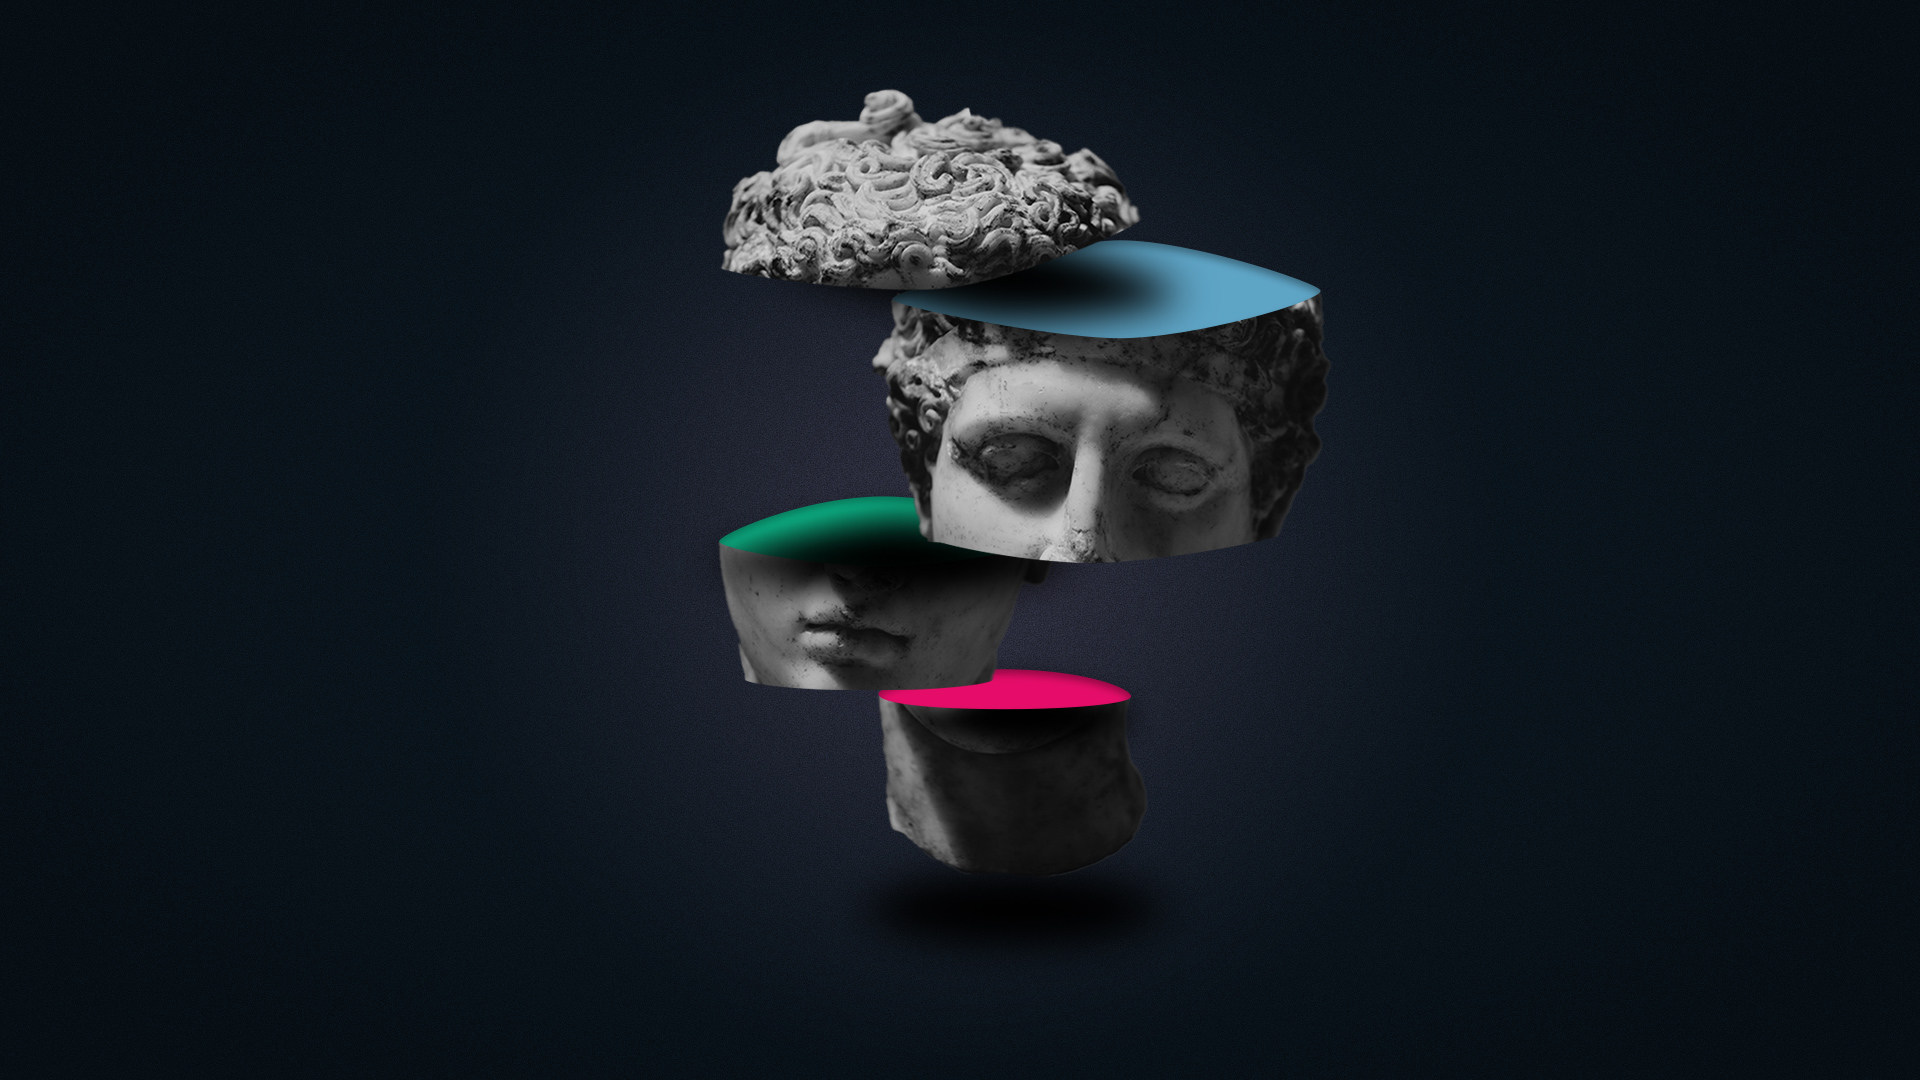 Sliced head manipulation and Split the RGB Channels in Photoshop and After Effects.